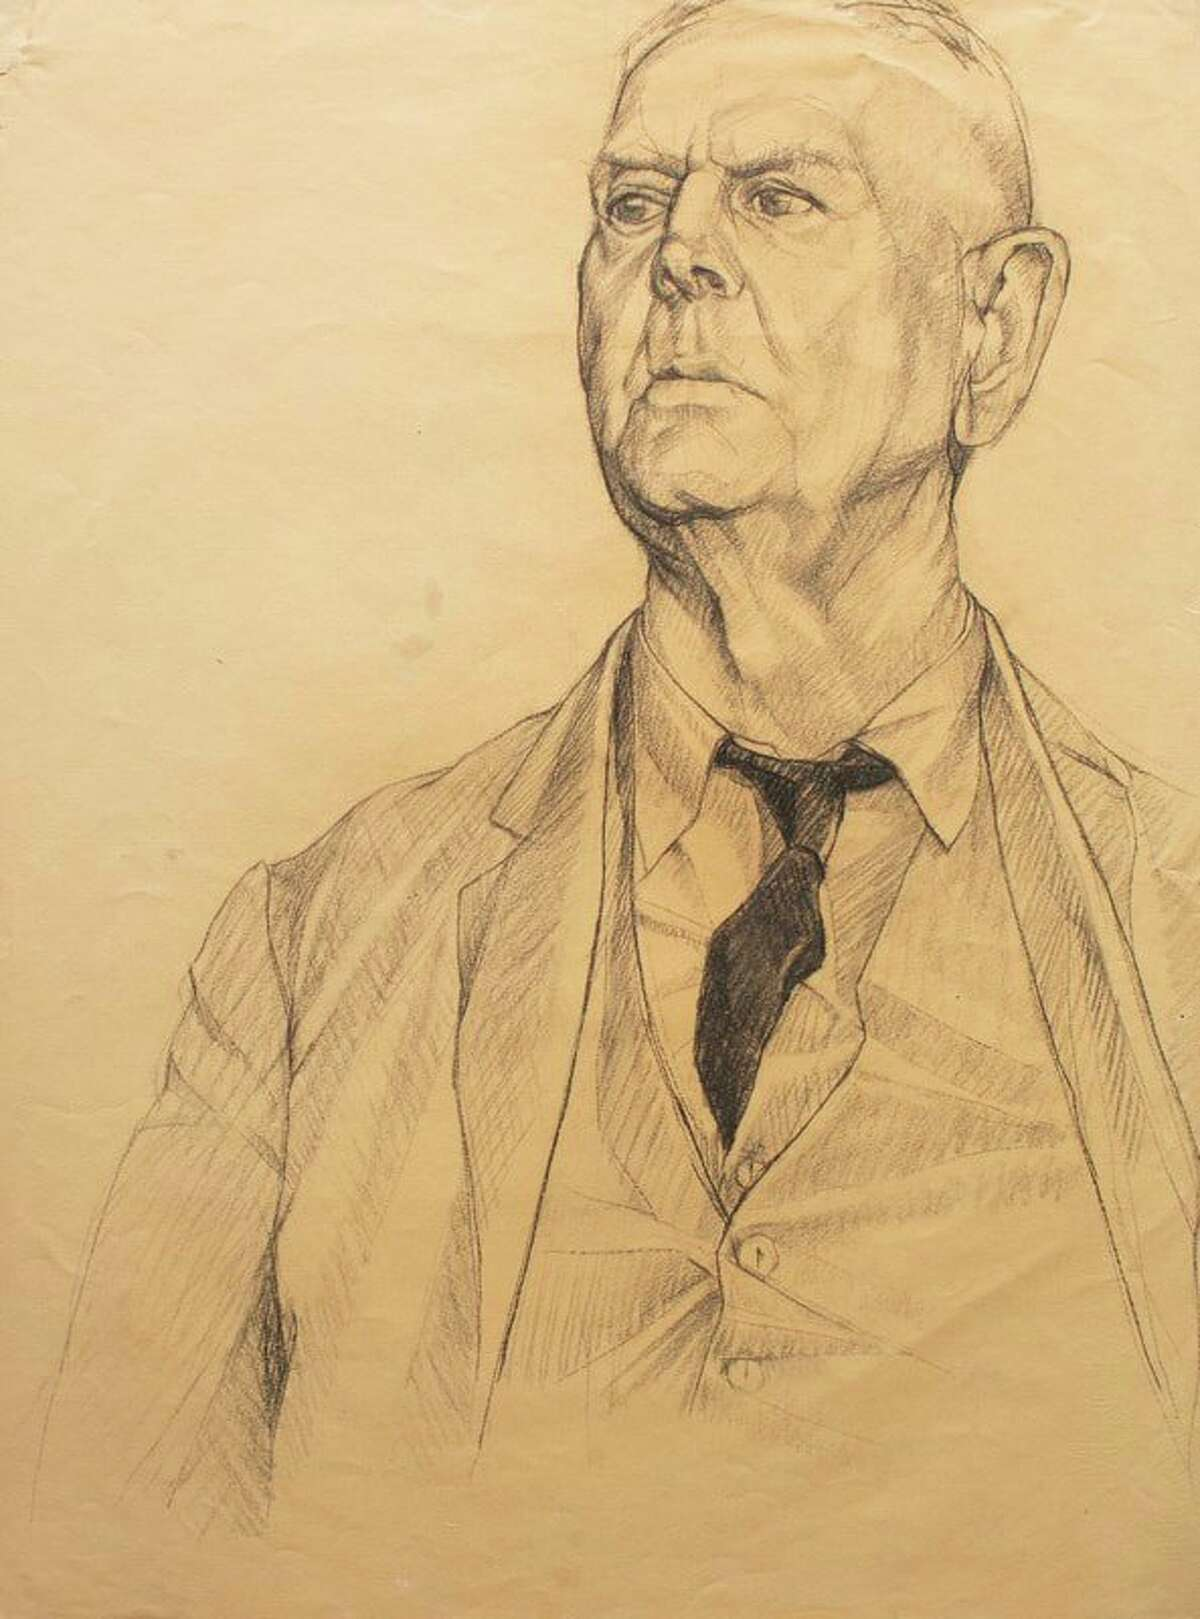 This was the original condition a figure study sketch by Marshall M. Fredericks was in before being conserved. (Photo provided/Marshal M. Fredericks Sculpture Museum archive)